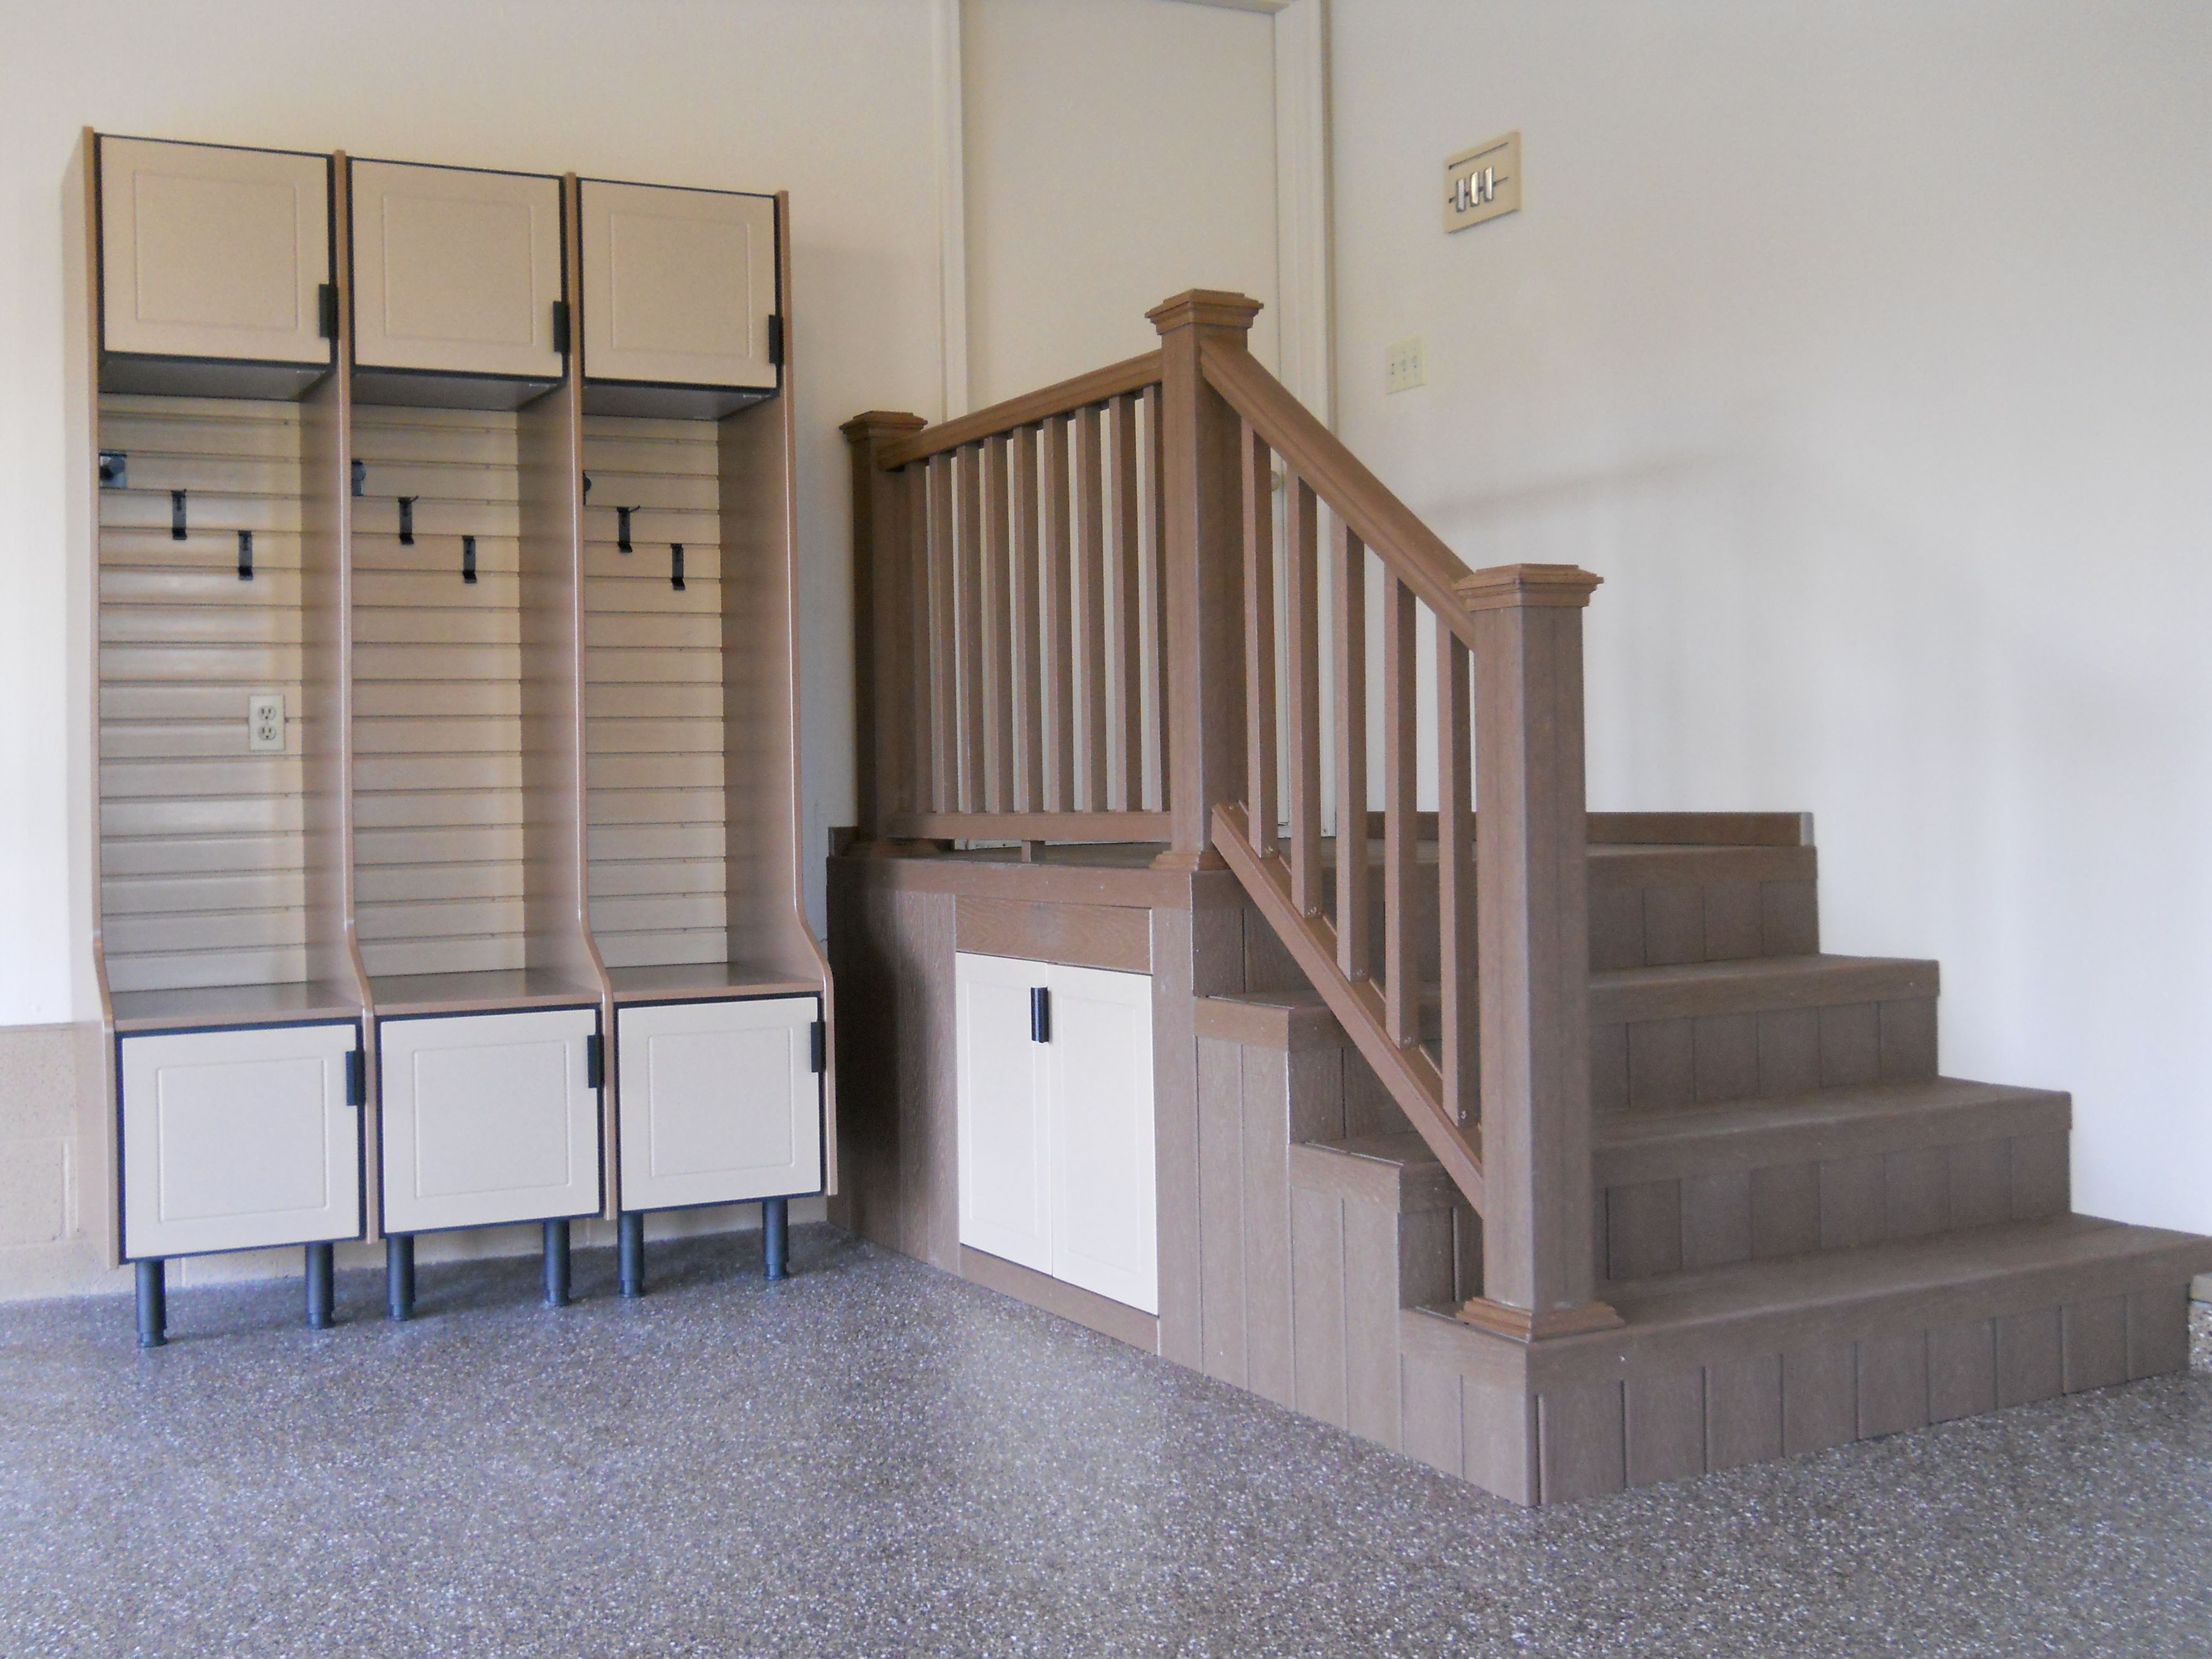 Best Garage Cabinets And Storage Systems With Images Garage 400 x 300